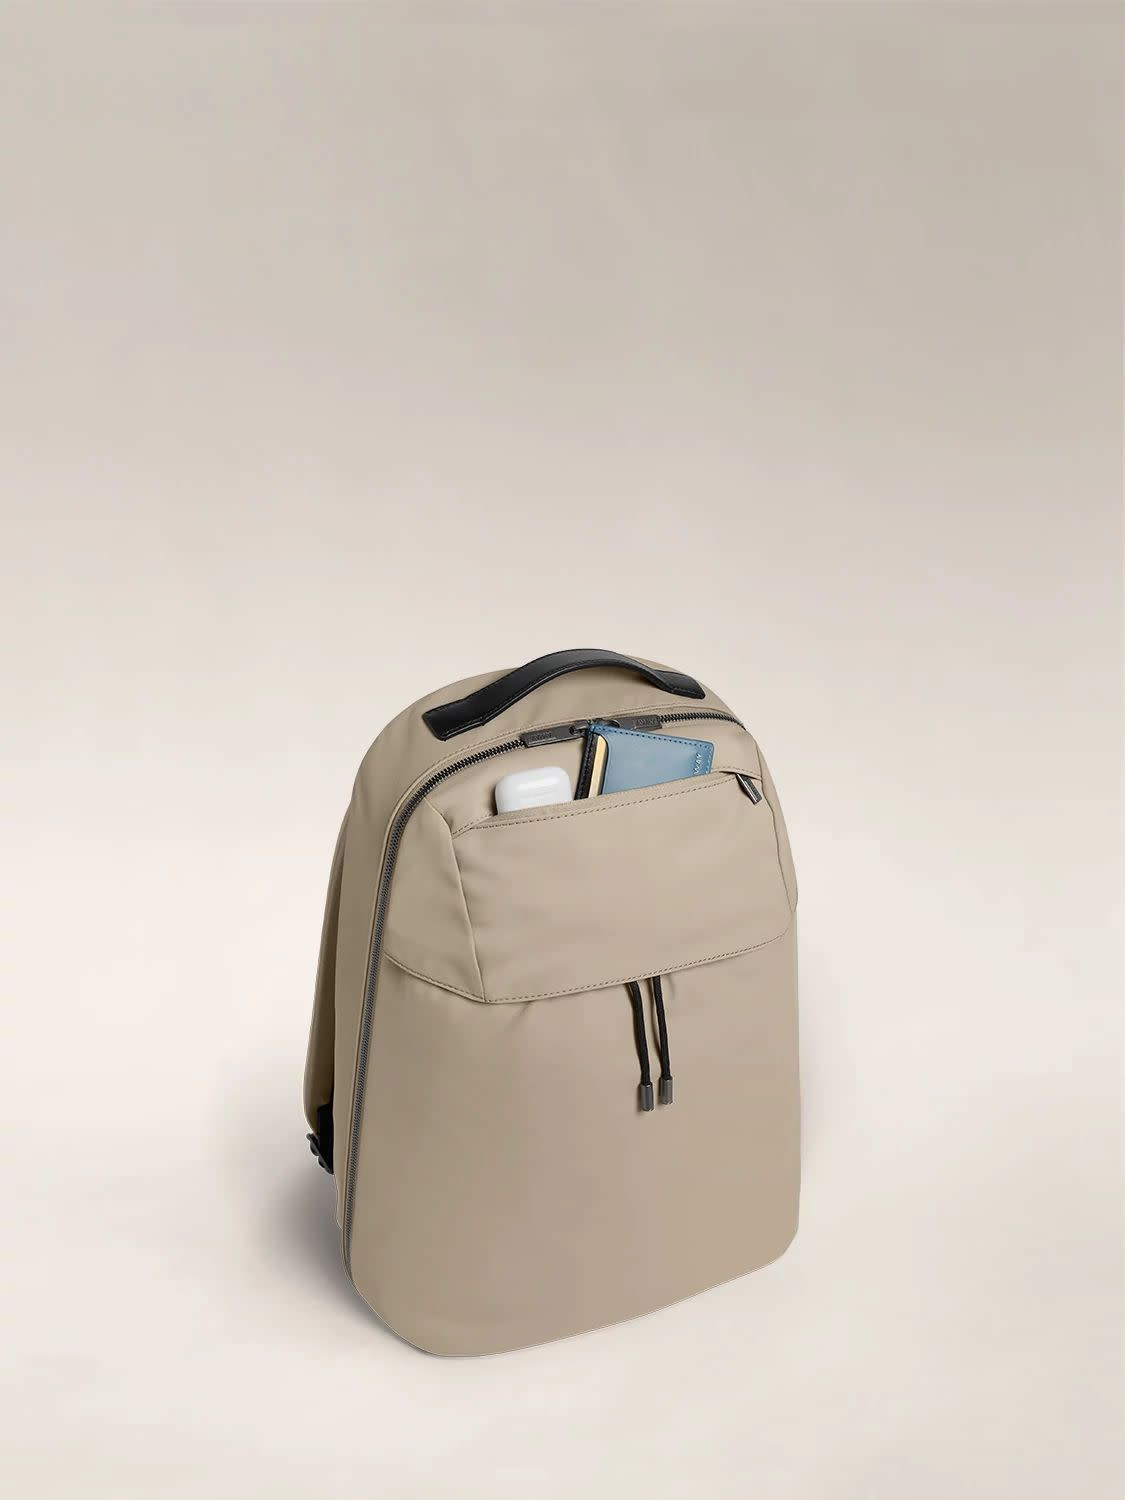 Angled view of the Flap Backpack in Sand